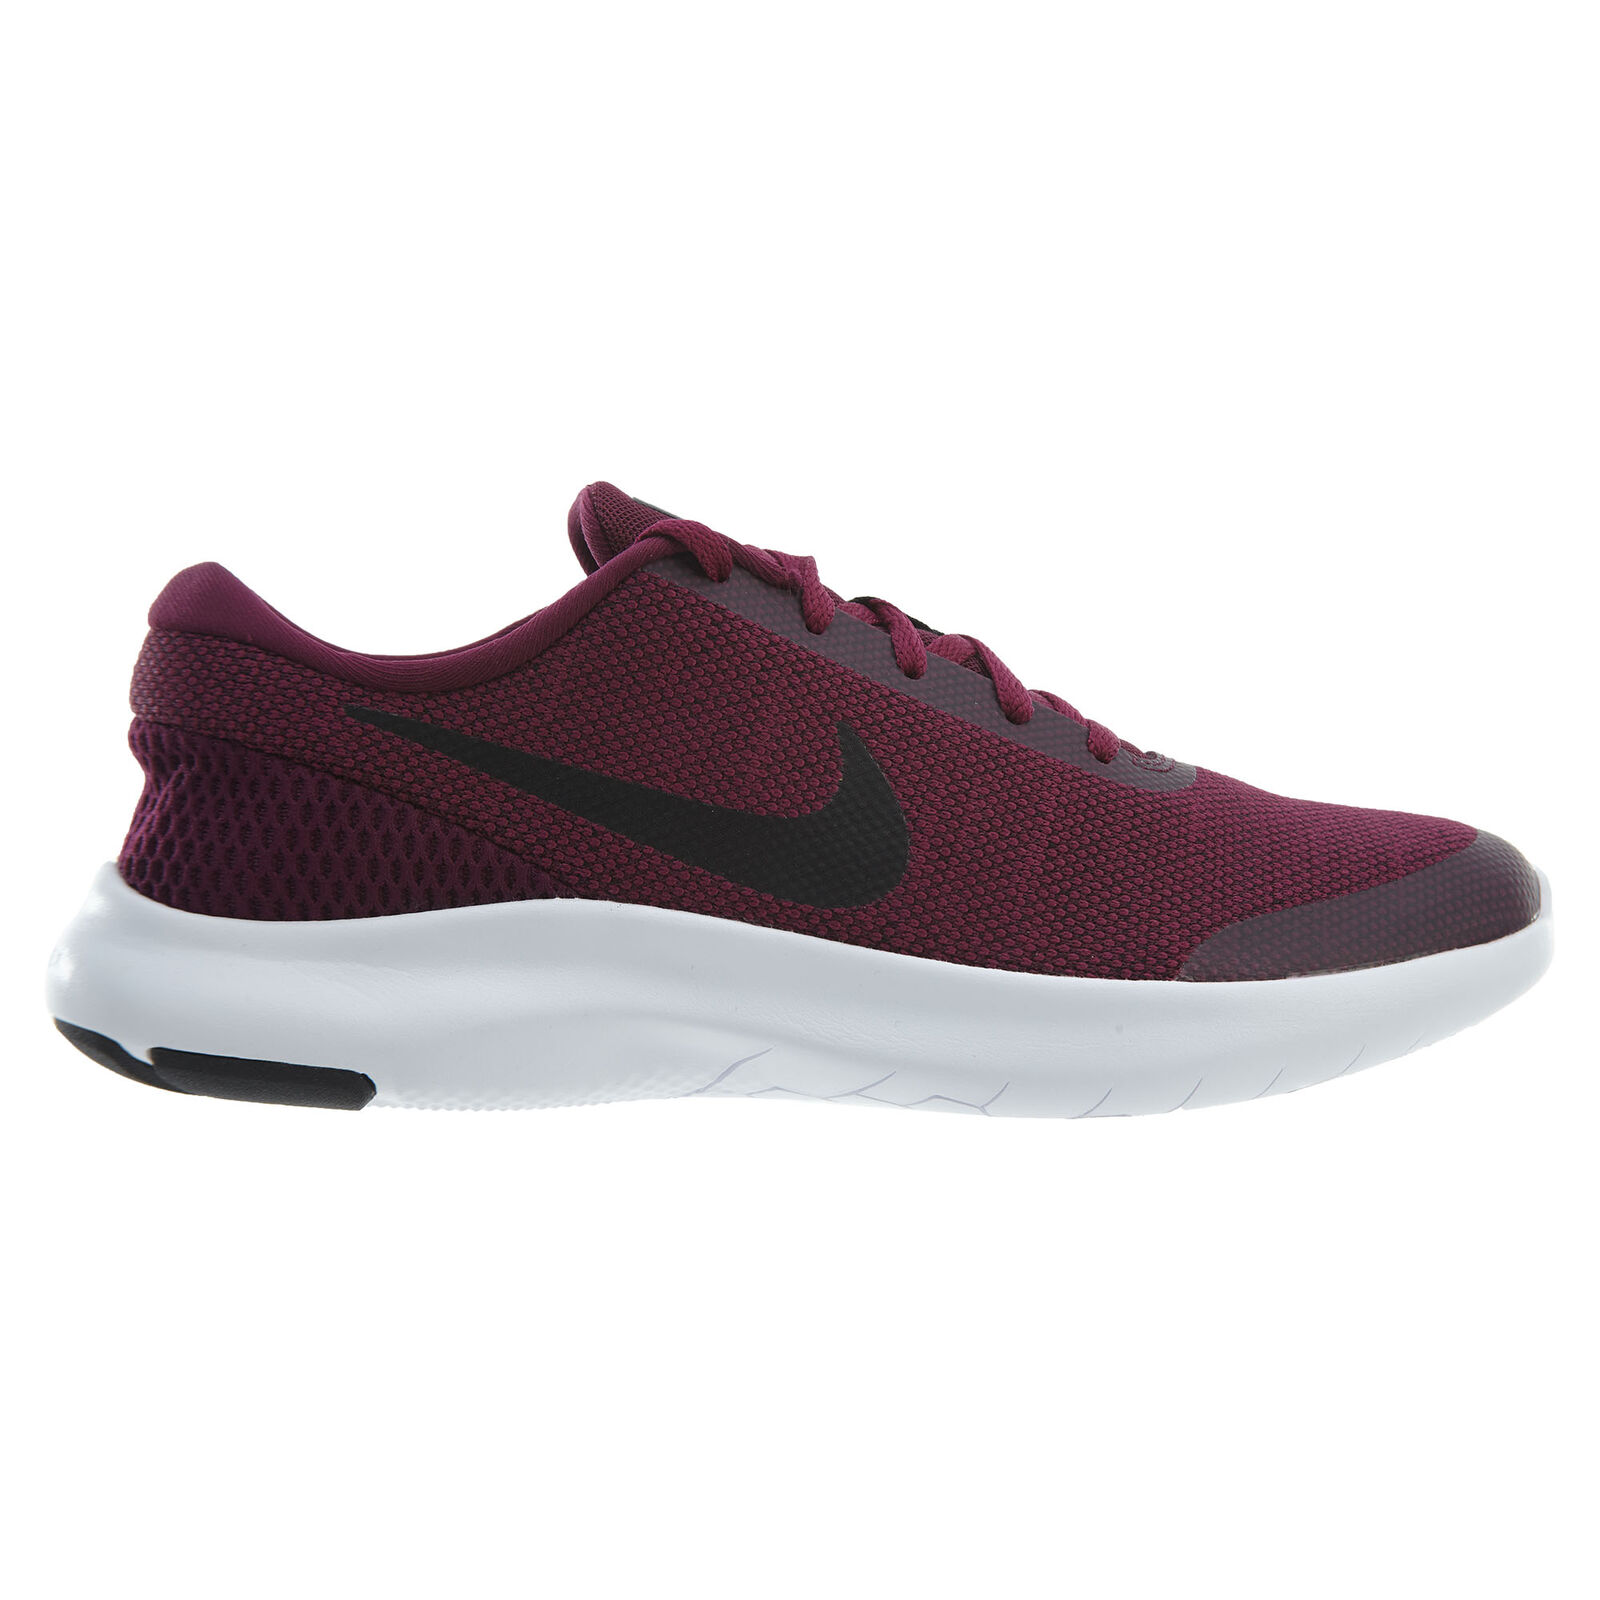 528db00fba1d2 Nike Flex Experience Experience Experience RN 7 Mens 908985-600 Bordeaux  Black Running Shoes Size